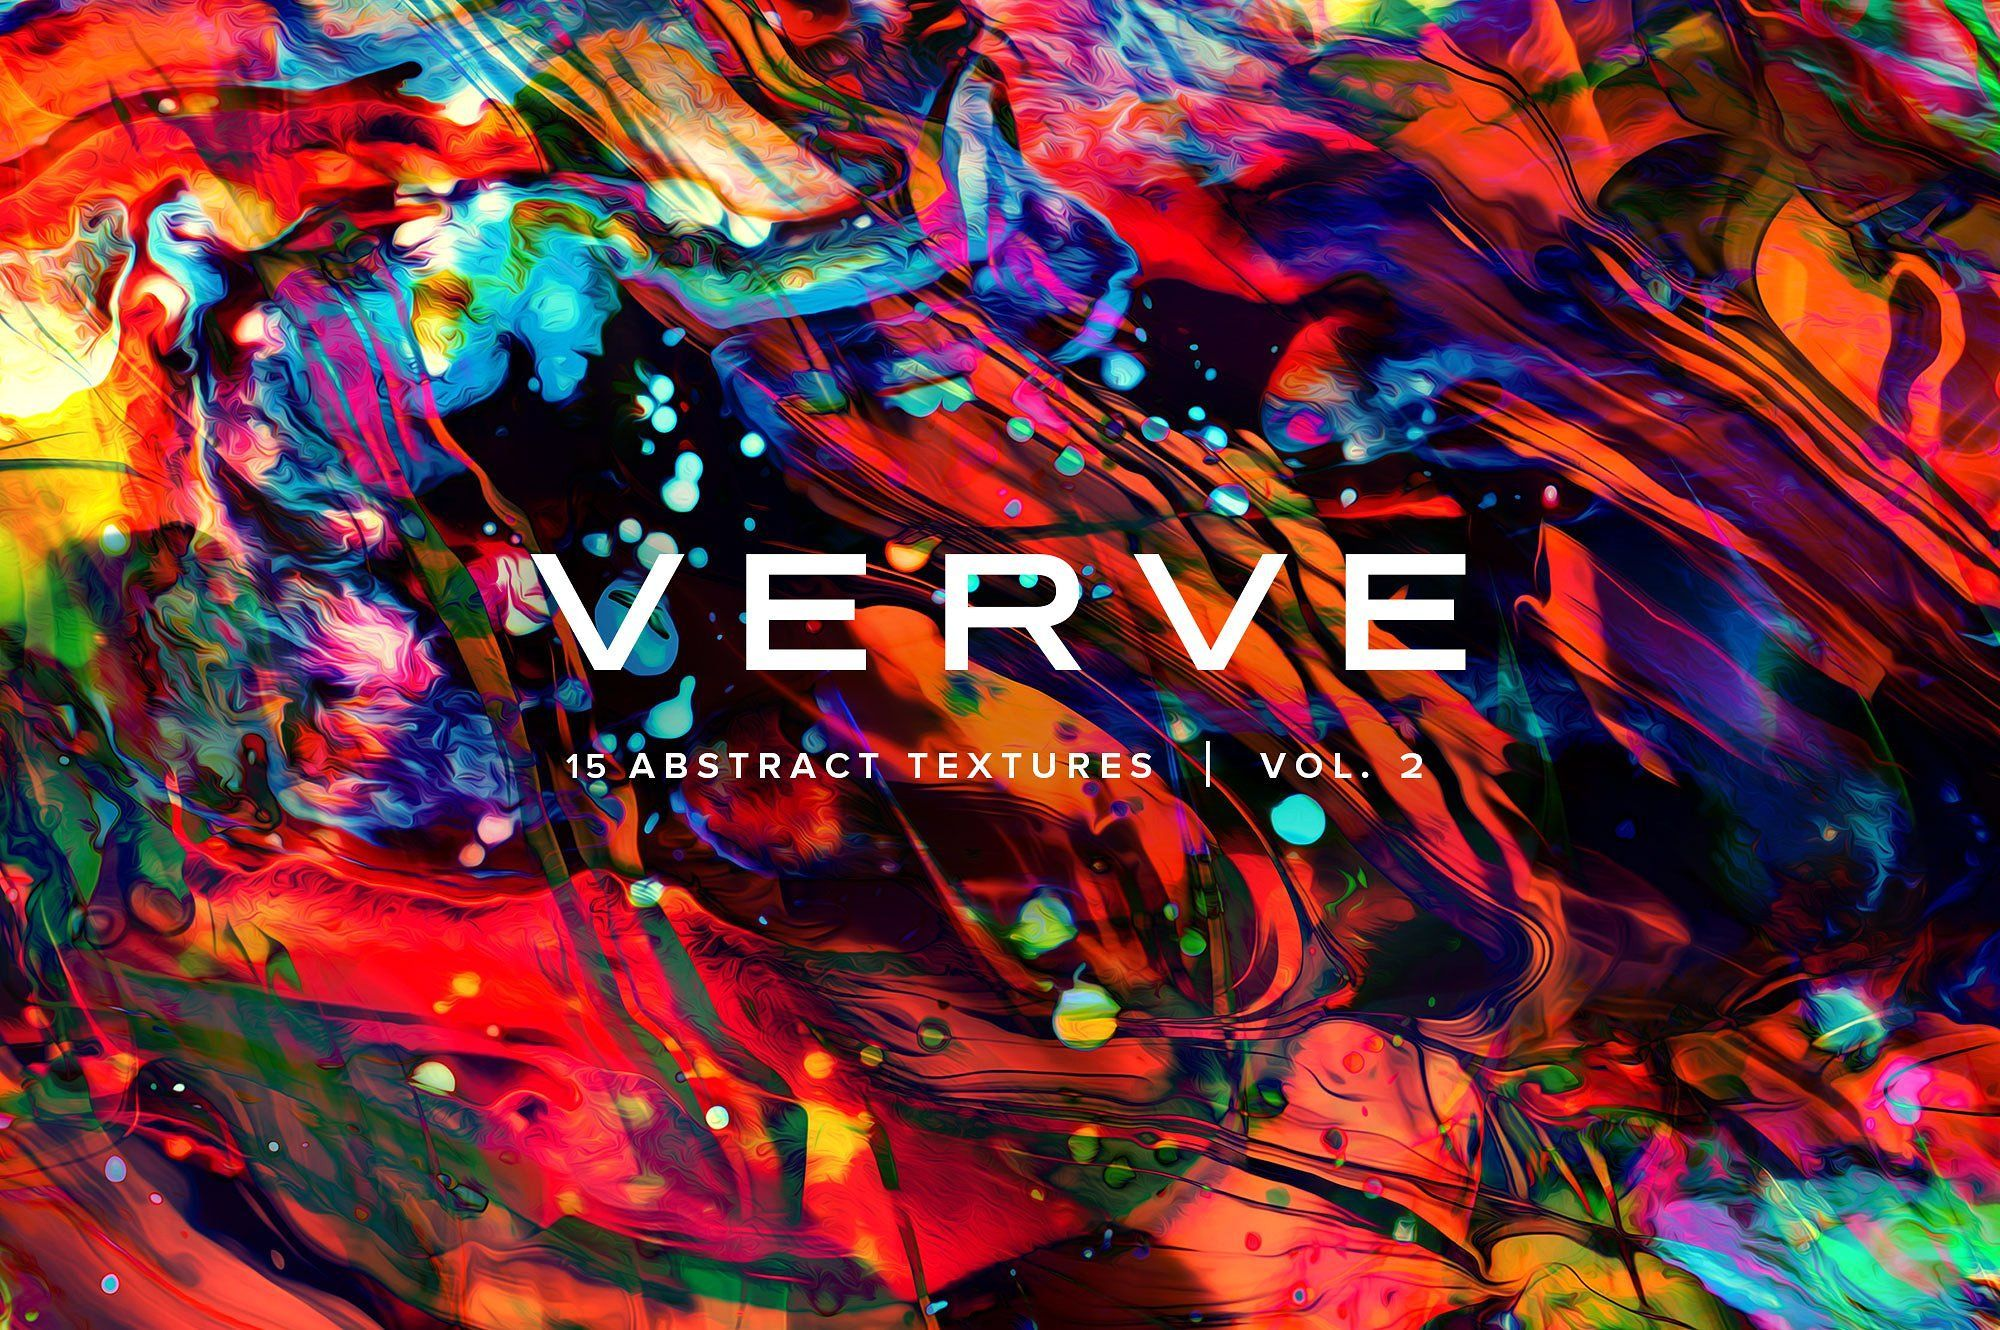 Verve Vol 2 15 Abstract Textures Photoshop Brush Set Abstract Texture